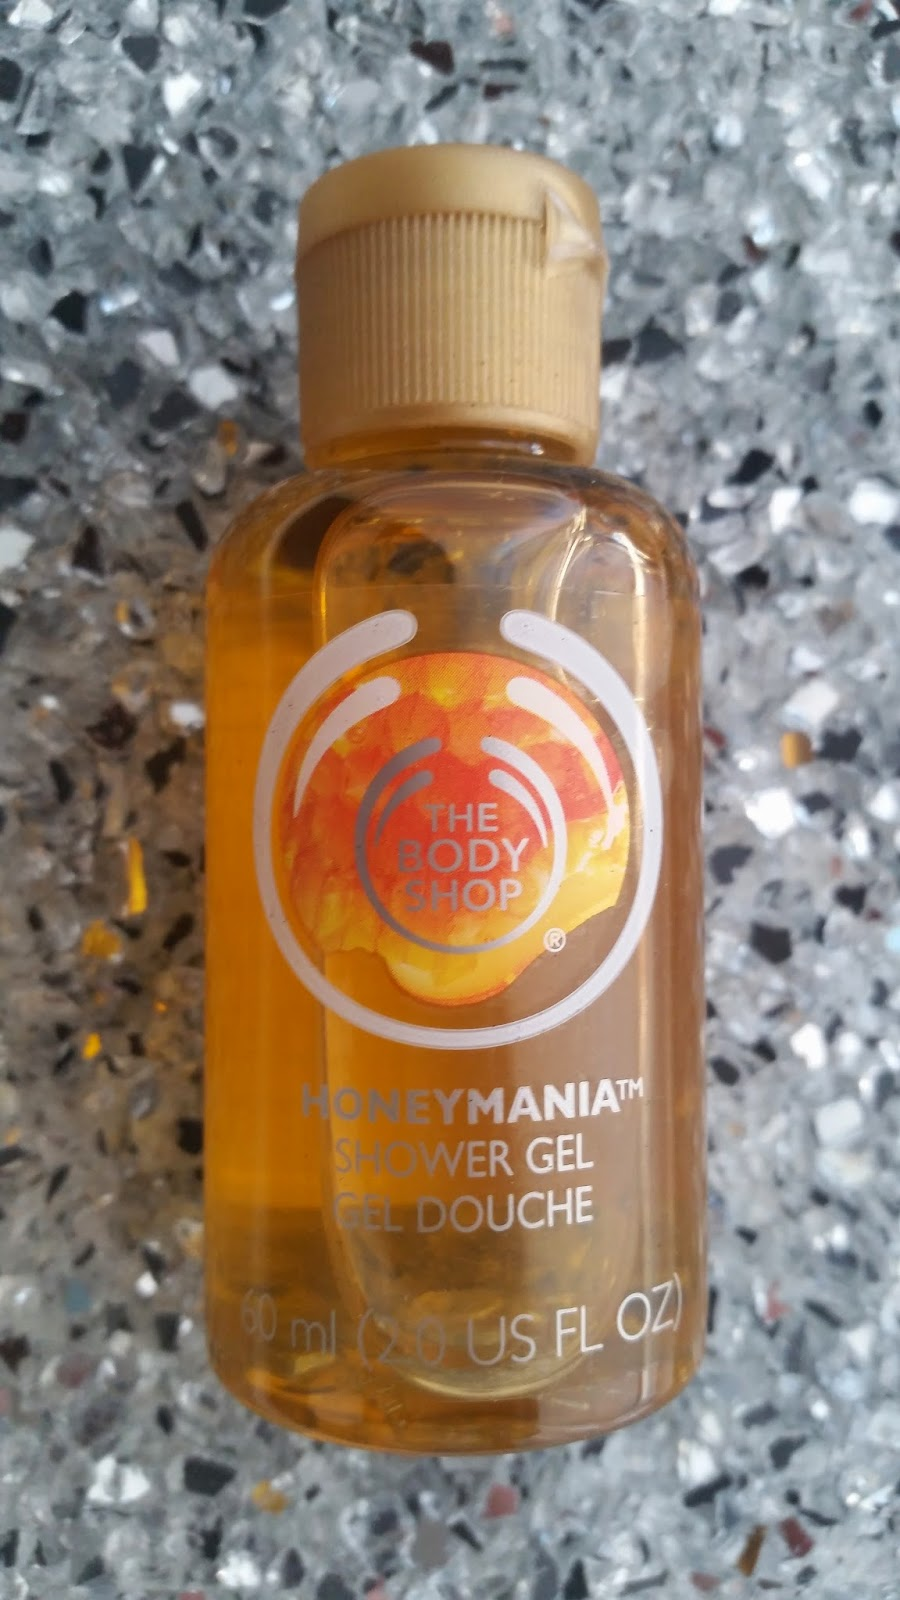 The Body Shop Honeymania Shower Gel - www.annitschkasblog.de